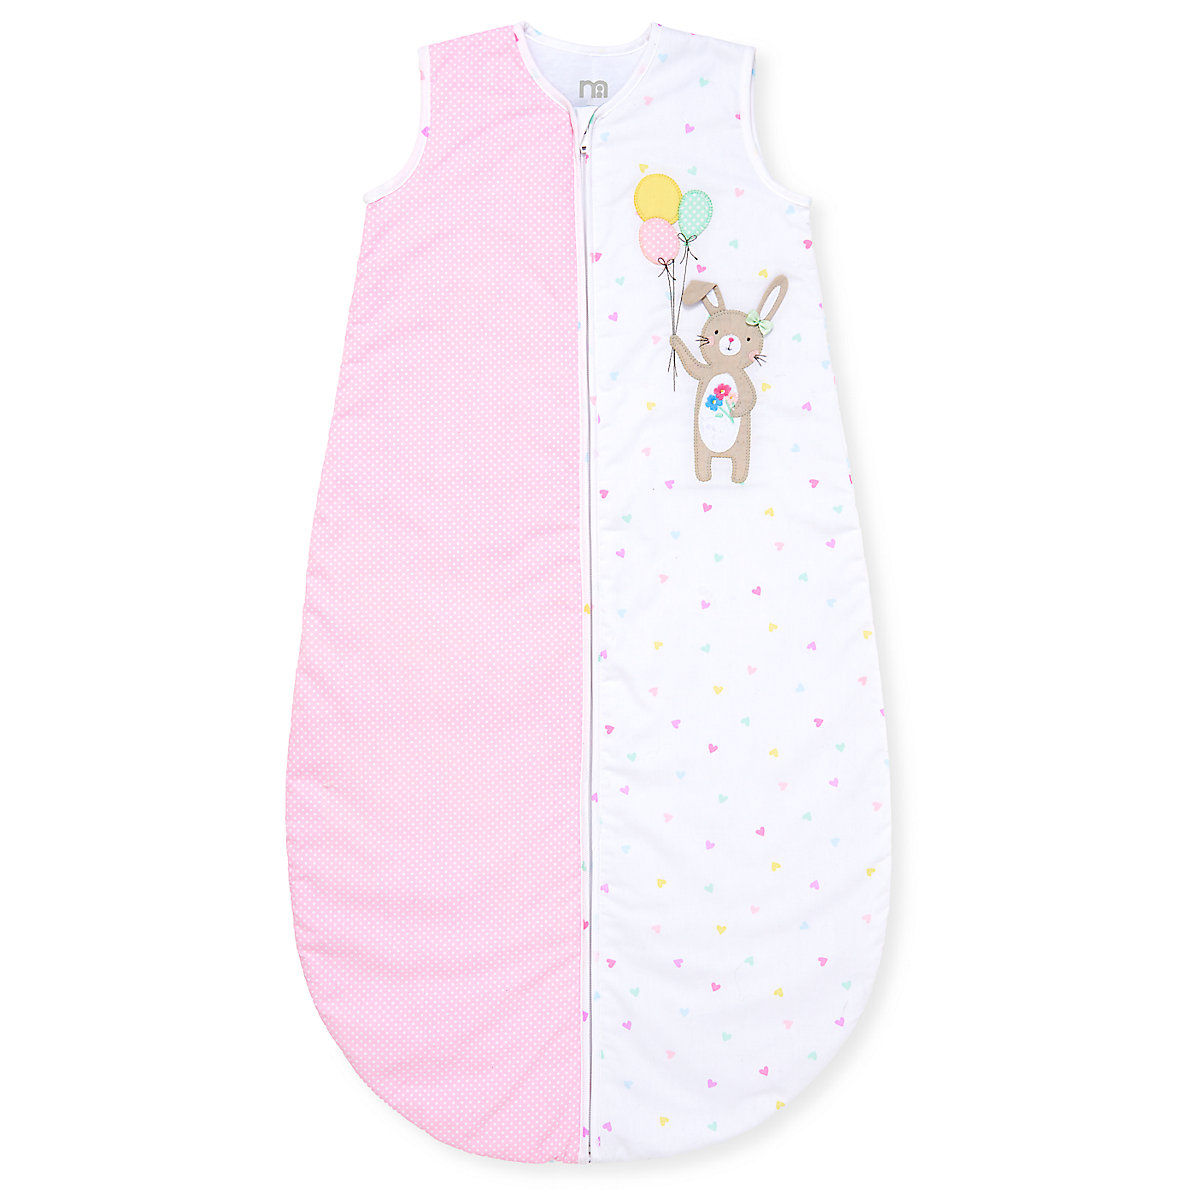 confetti party 6-18 months snoozie sleep bag - 2.5 tog